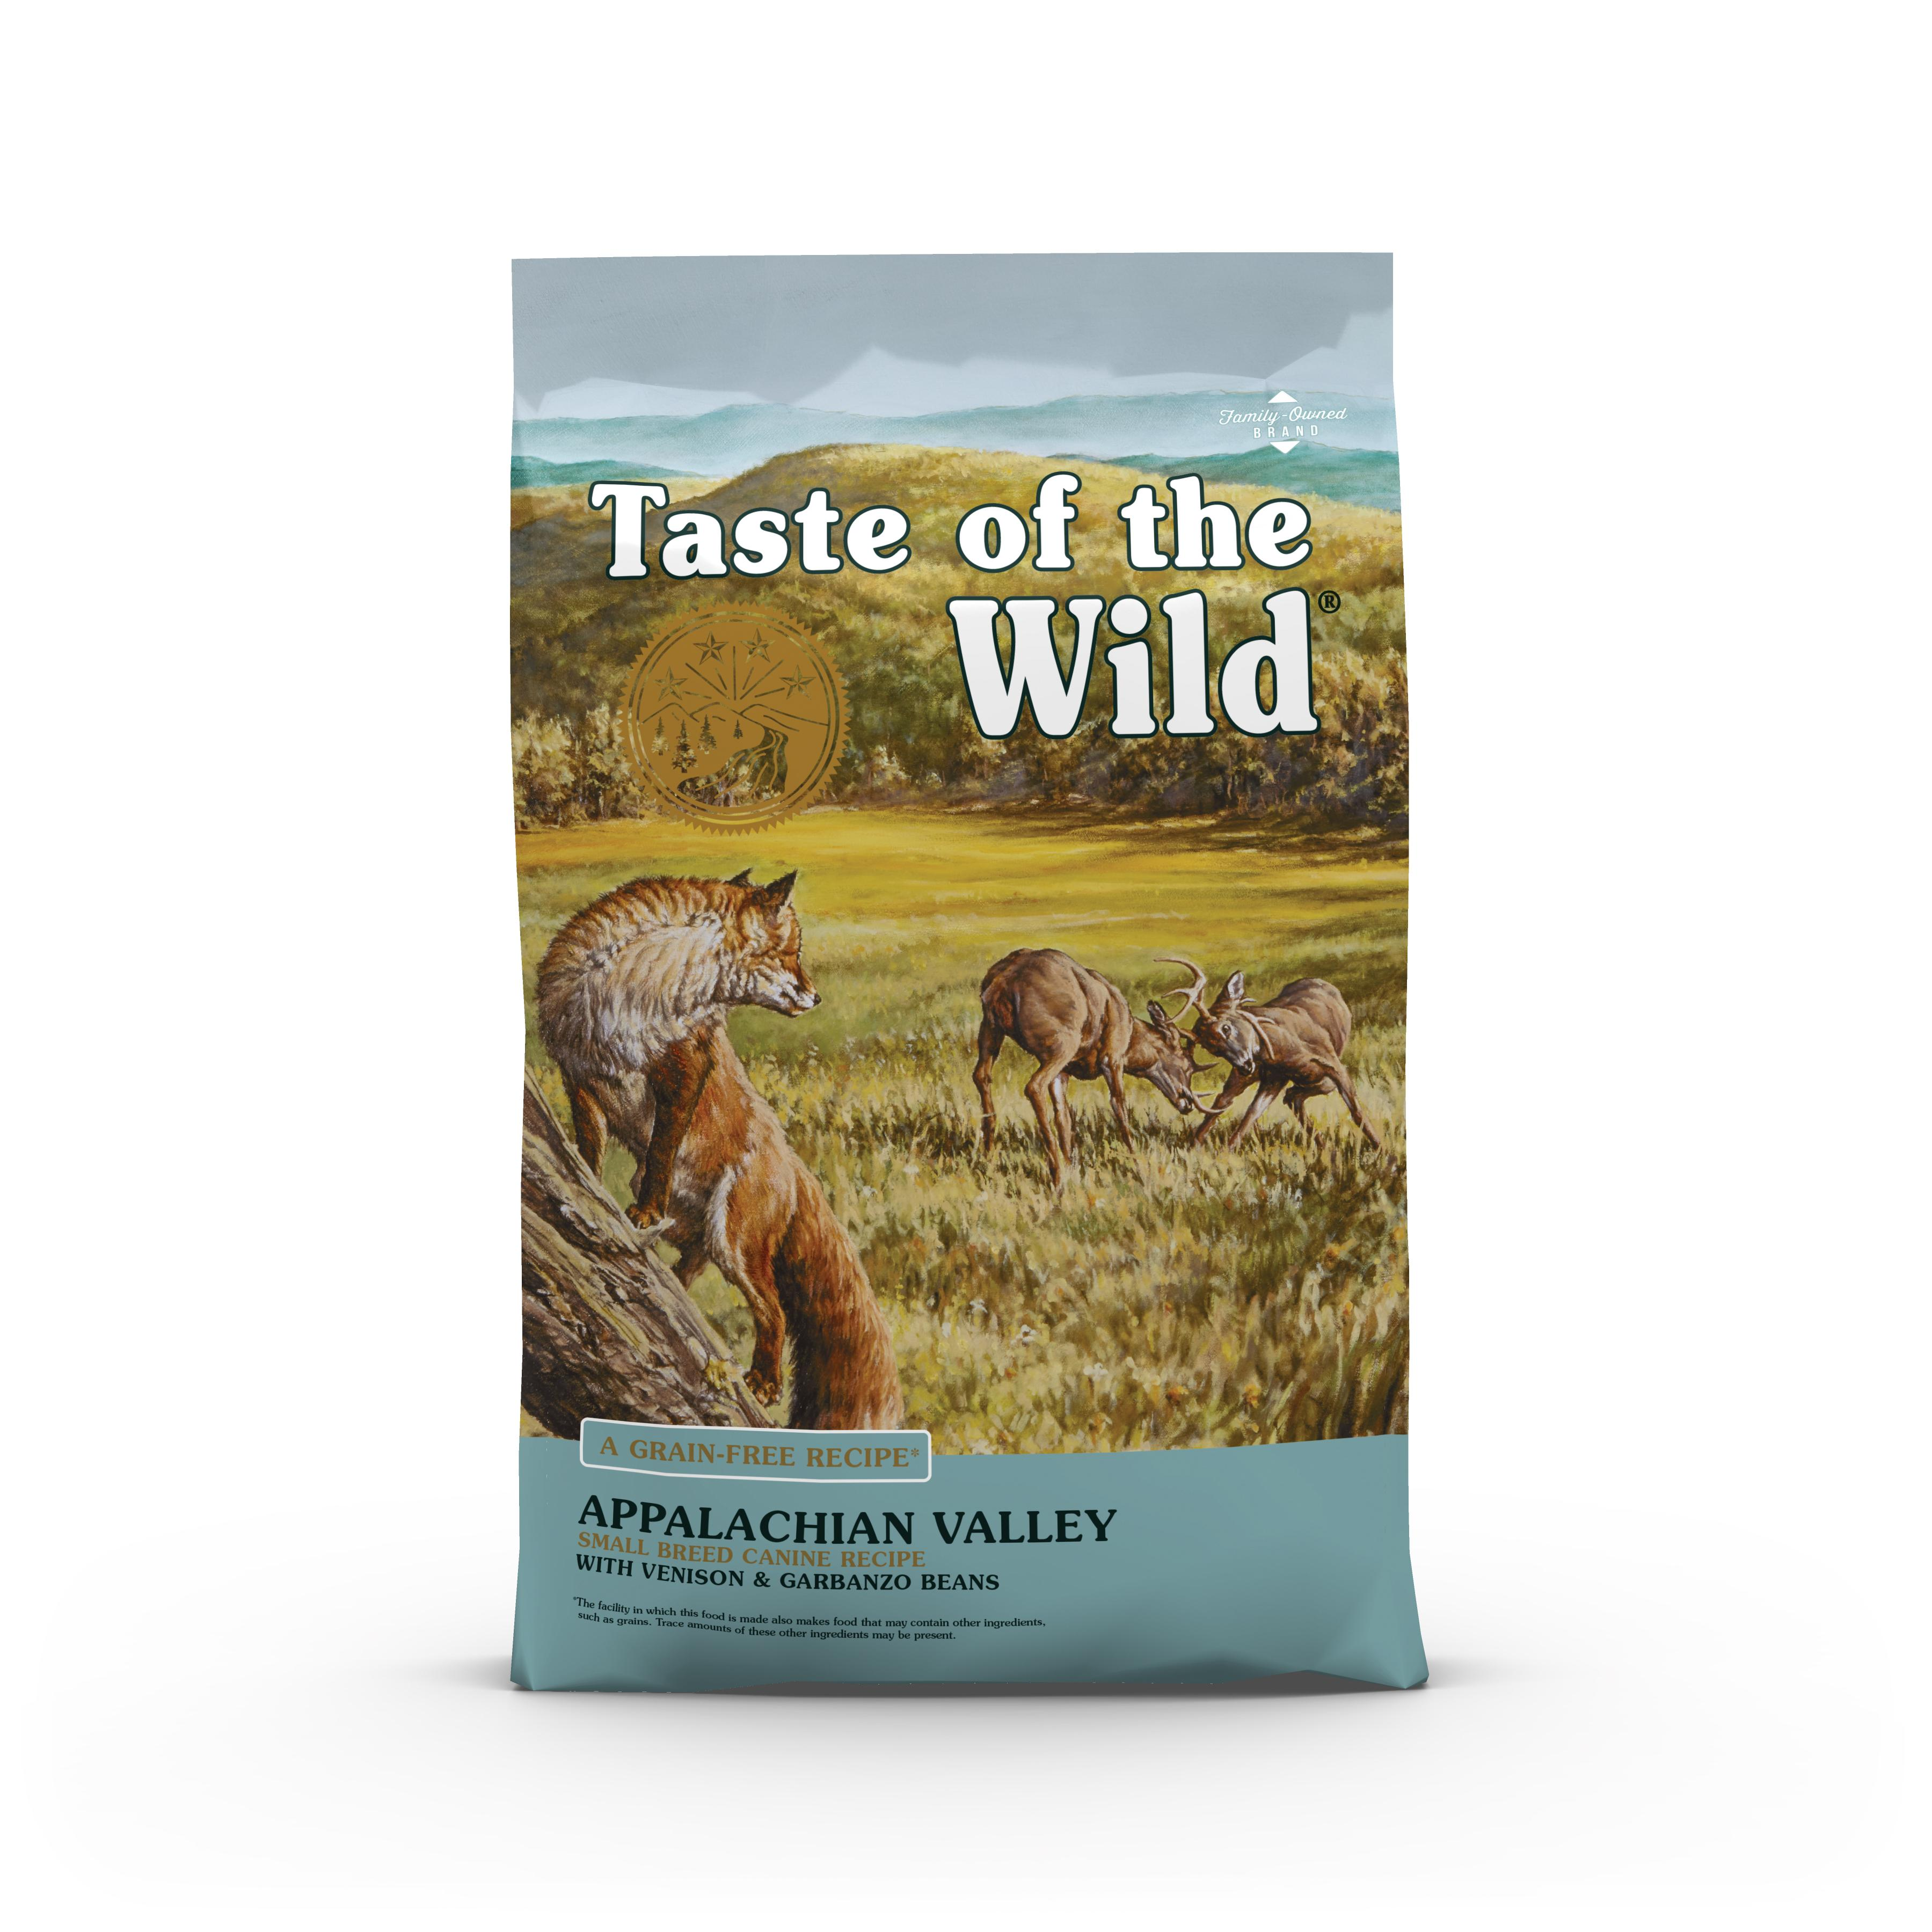 Taste of the Wild Appalachian Valley Small Breed Grain-Free Dry Dog Food, 5-lb